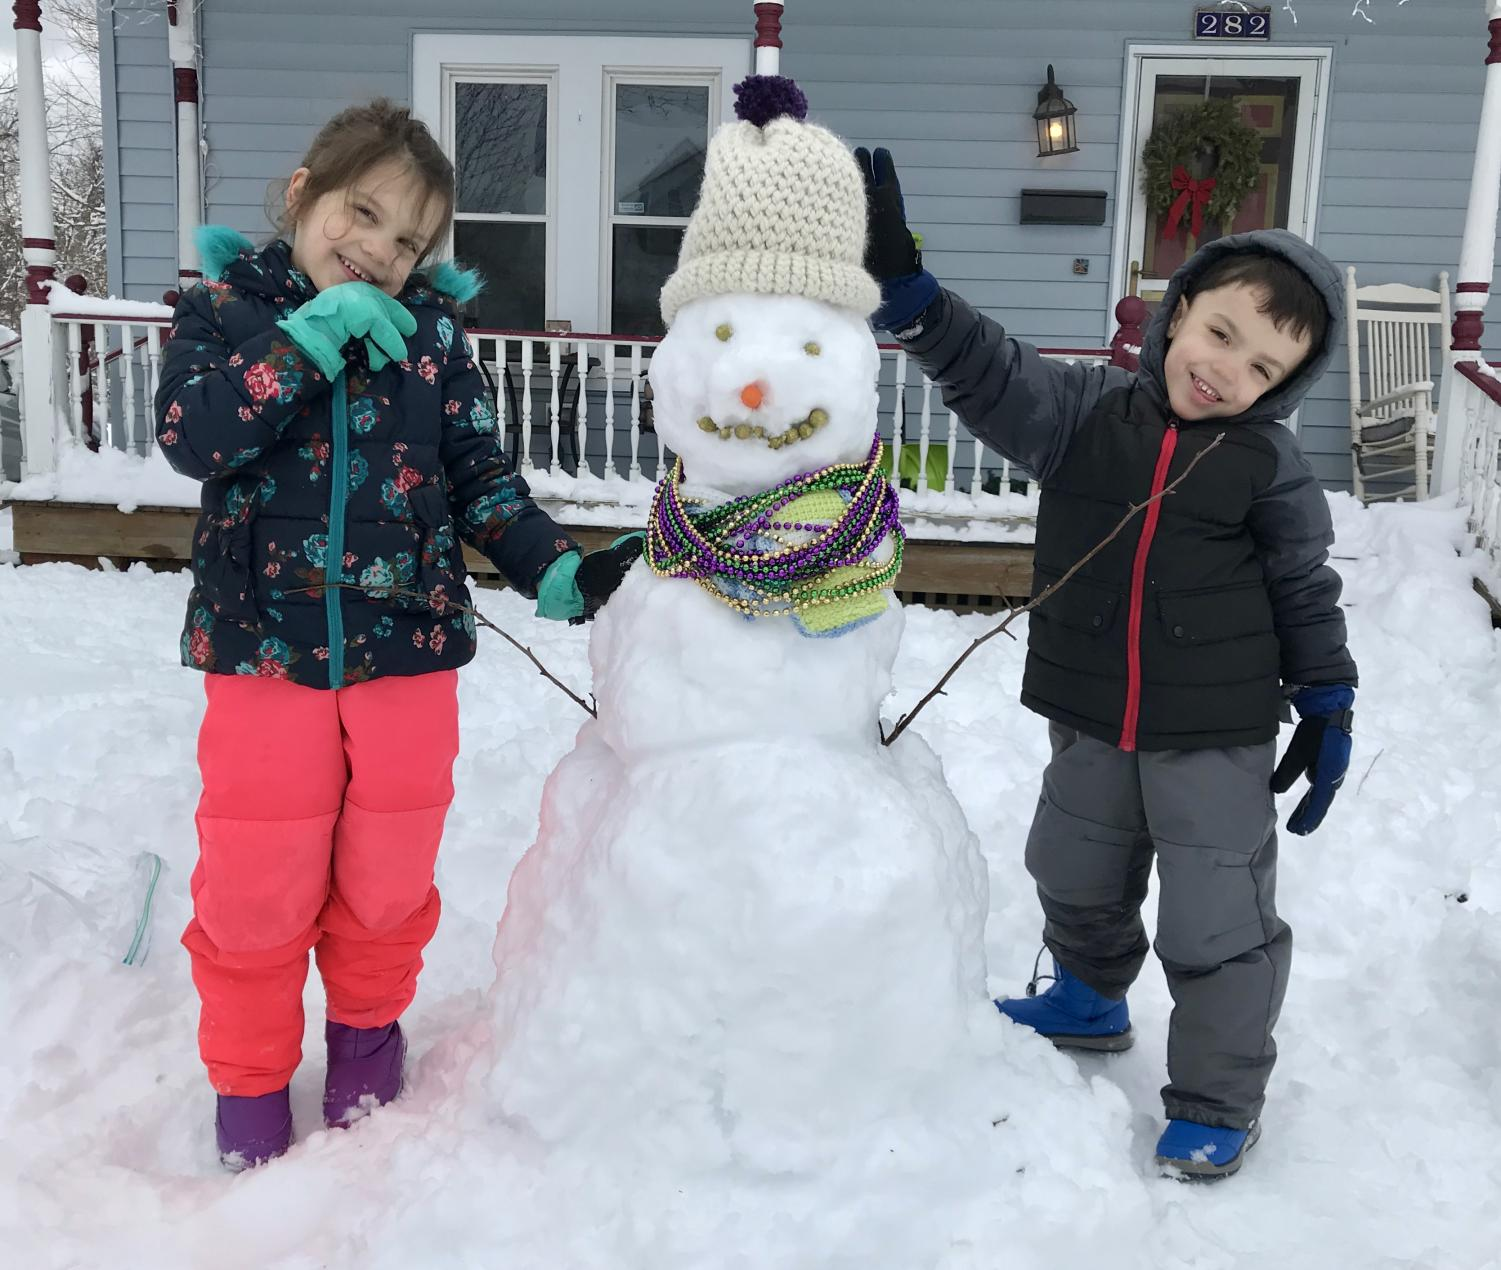 English+Teacher+Amy+Plackowski%27s+children+Myka+and+Asher+with+%22Fred%2C+the+Mardi+Gras+Snowman%22+hamming+it+up.